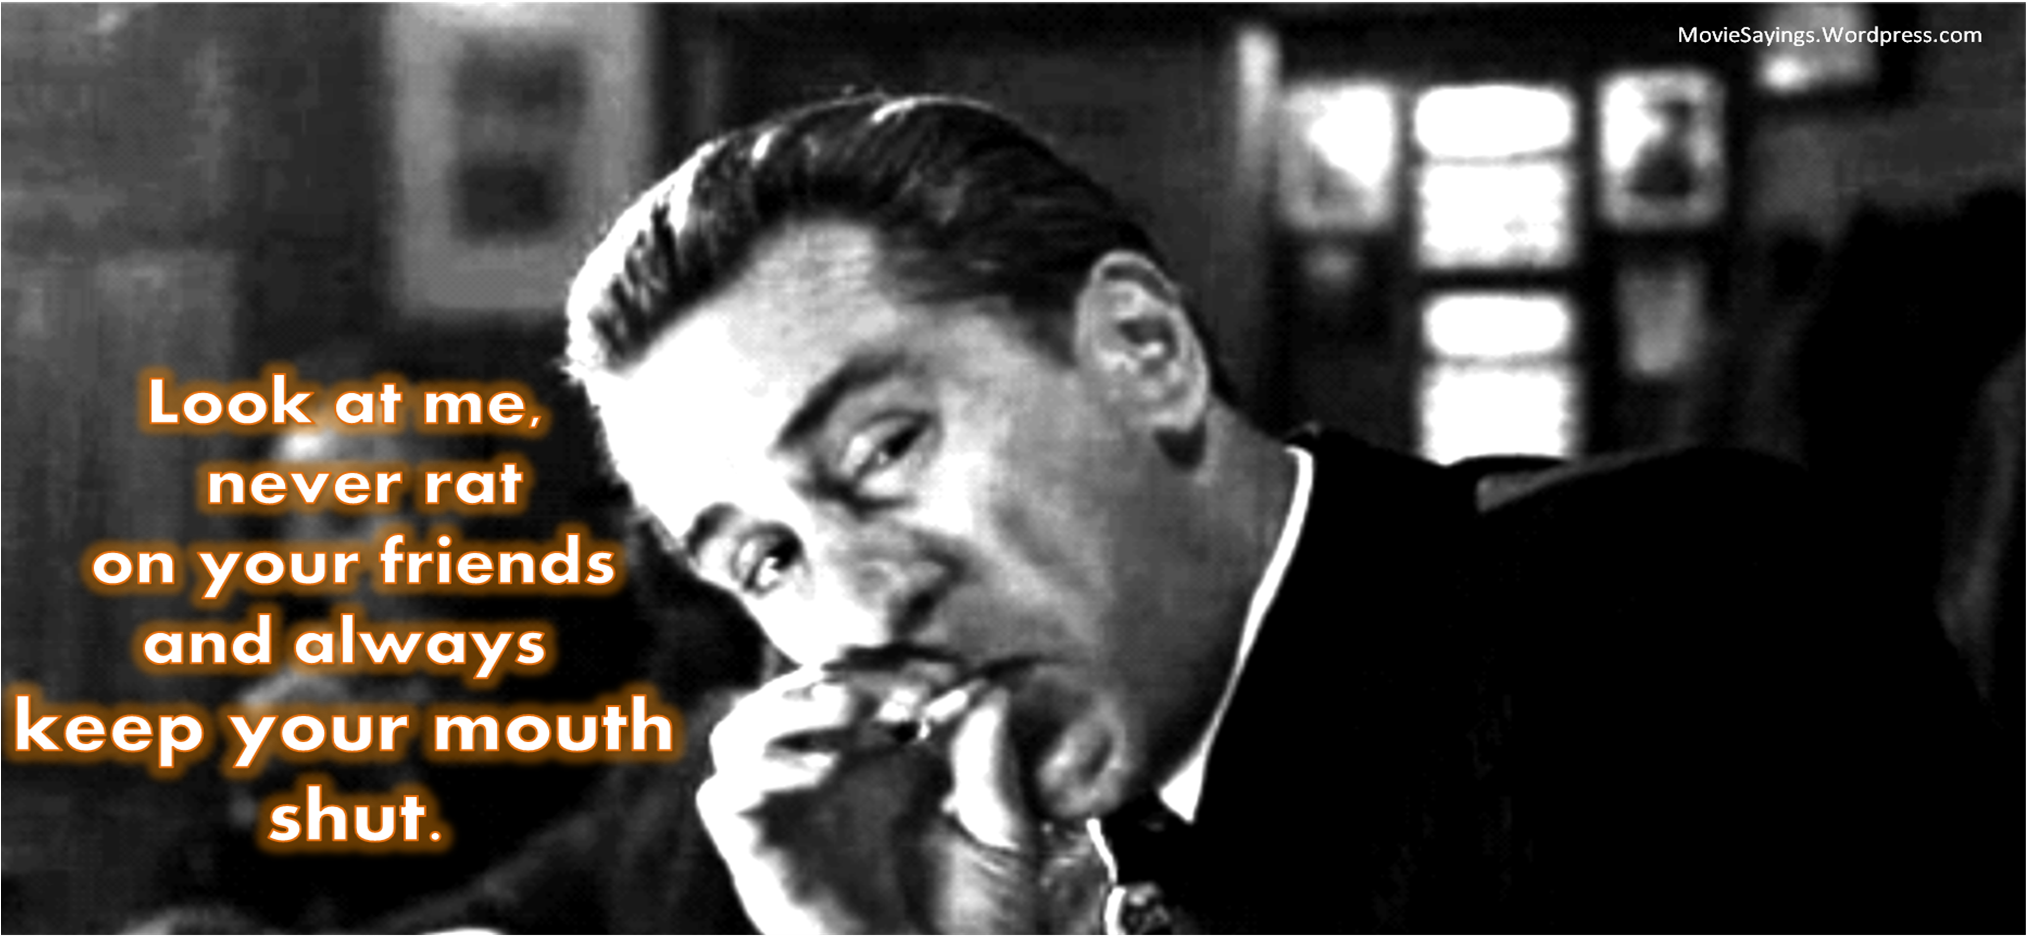 Best Goodfellas Quotes Pin by Sue Ondish on classic flix | Movie Quotes, Quotes, Film quotes Best Goodfellas Quotes